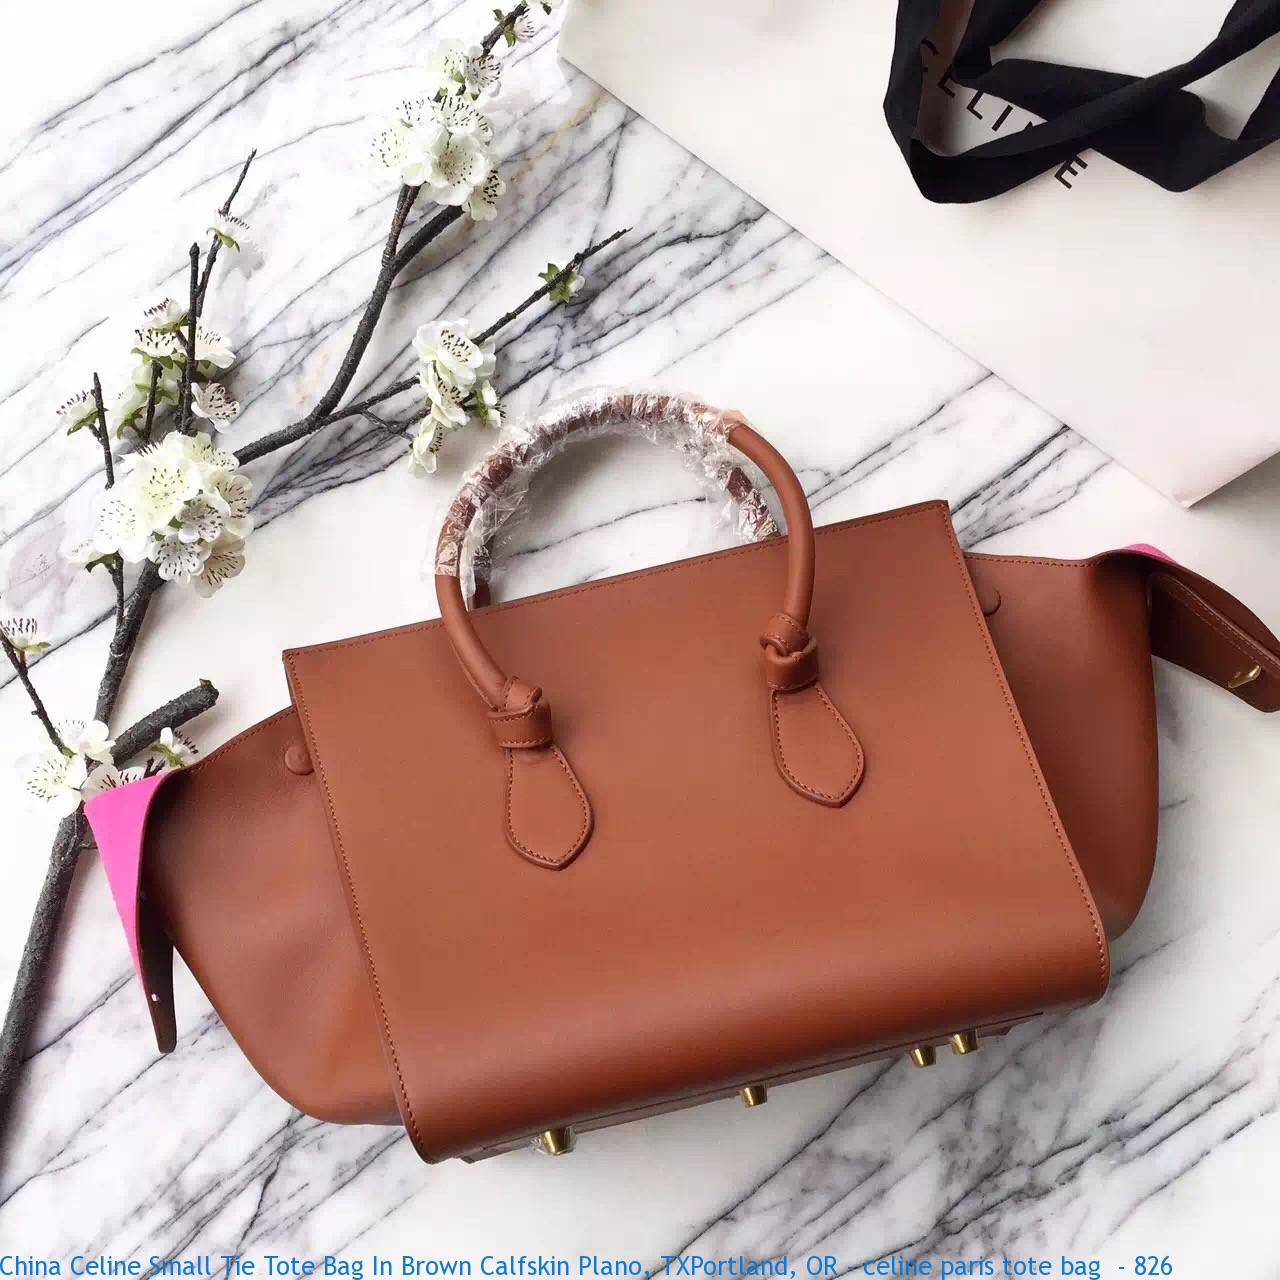 ebf34bbc31b4 China Celine Small Tie Tote Bag In Brown Calfskin Plano